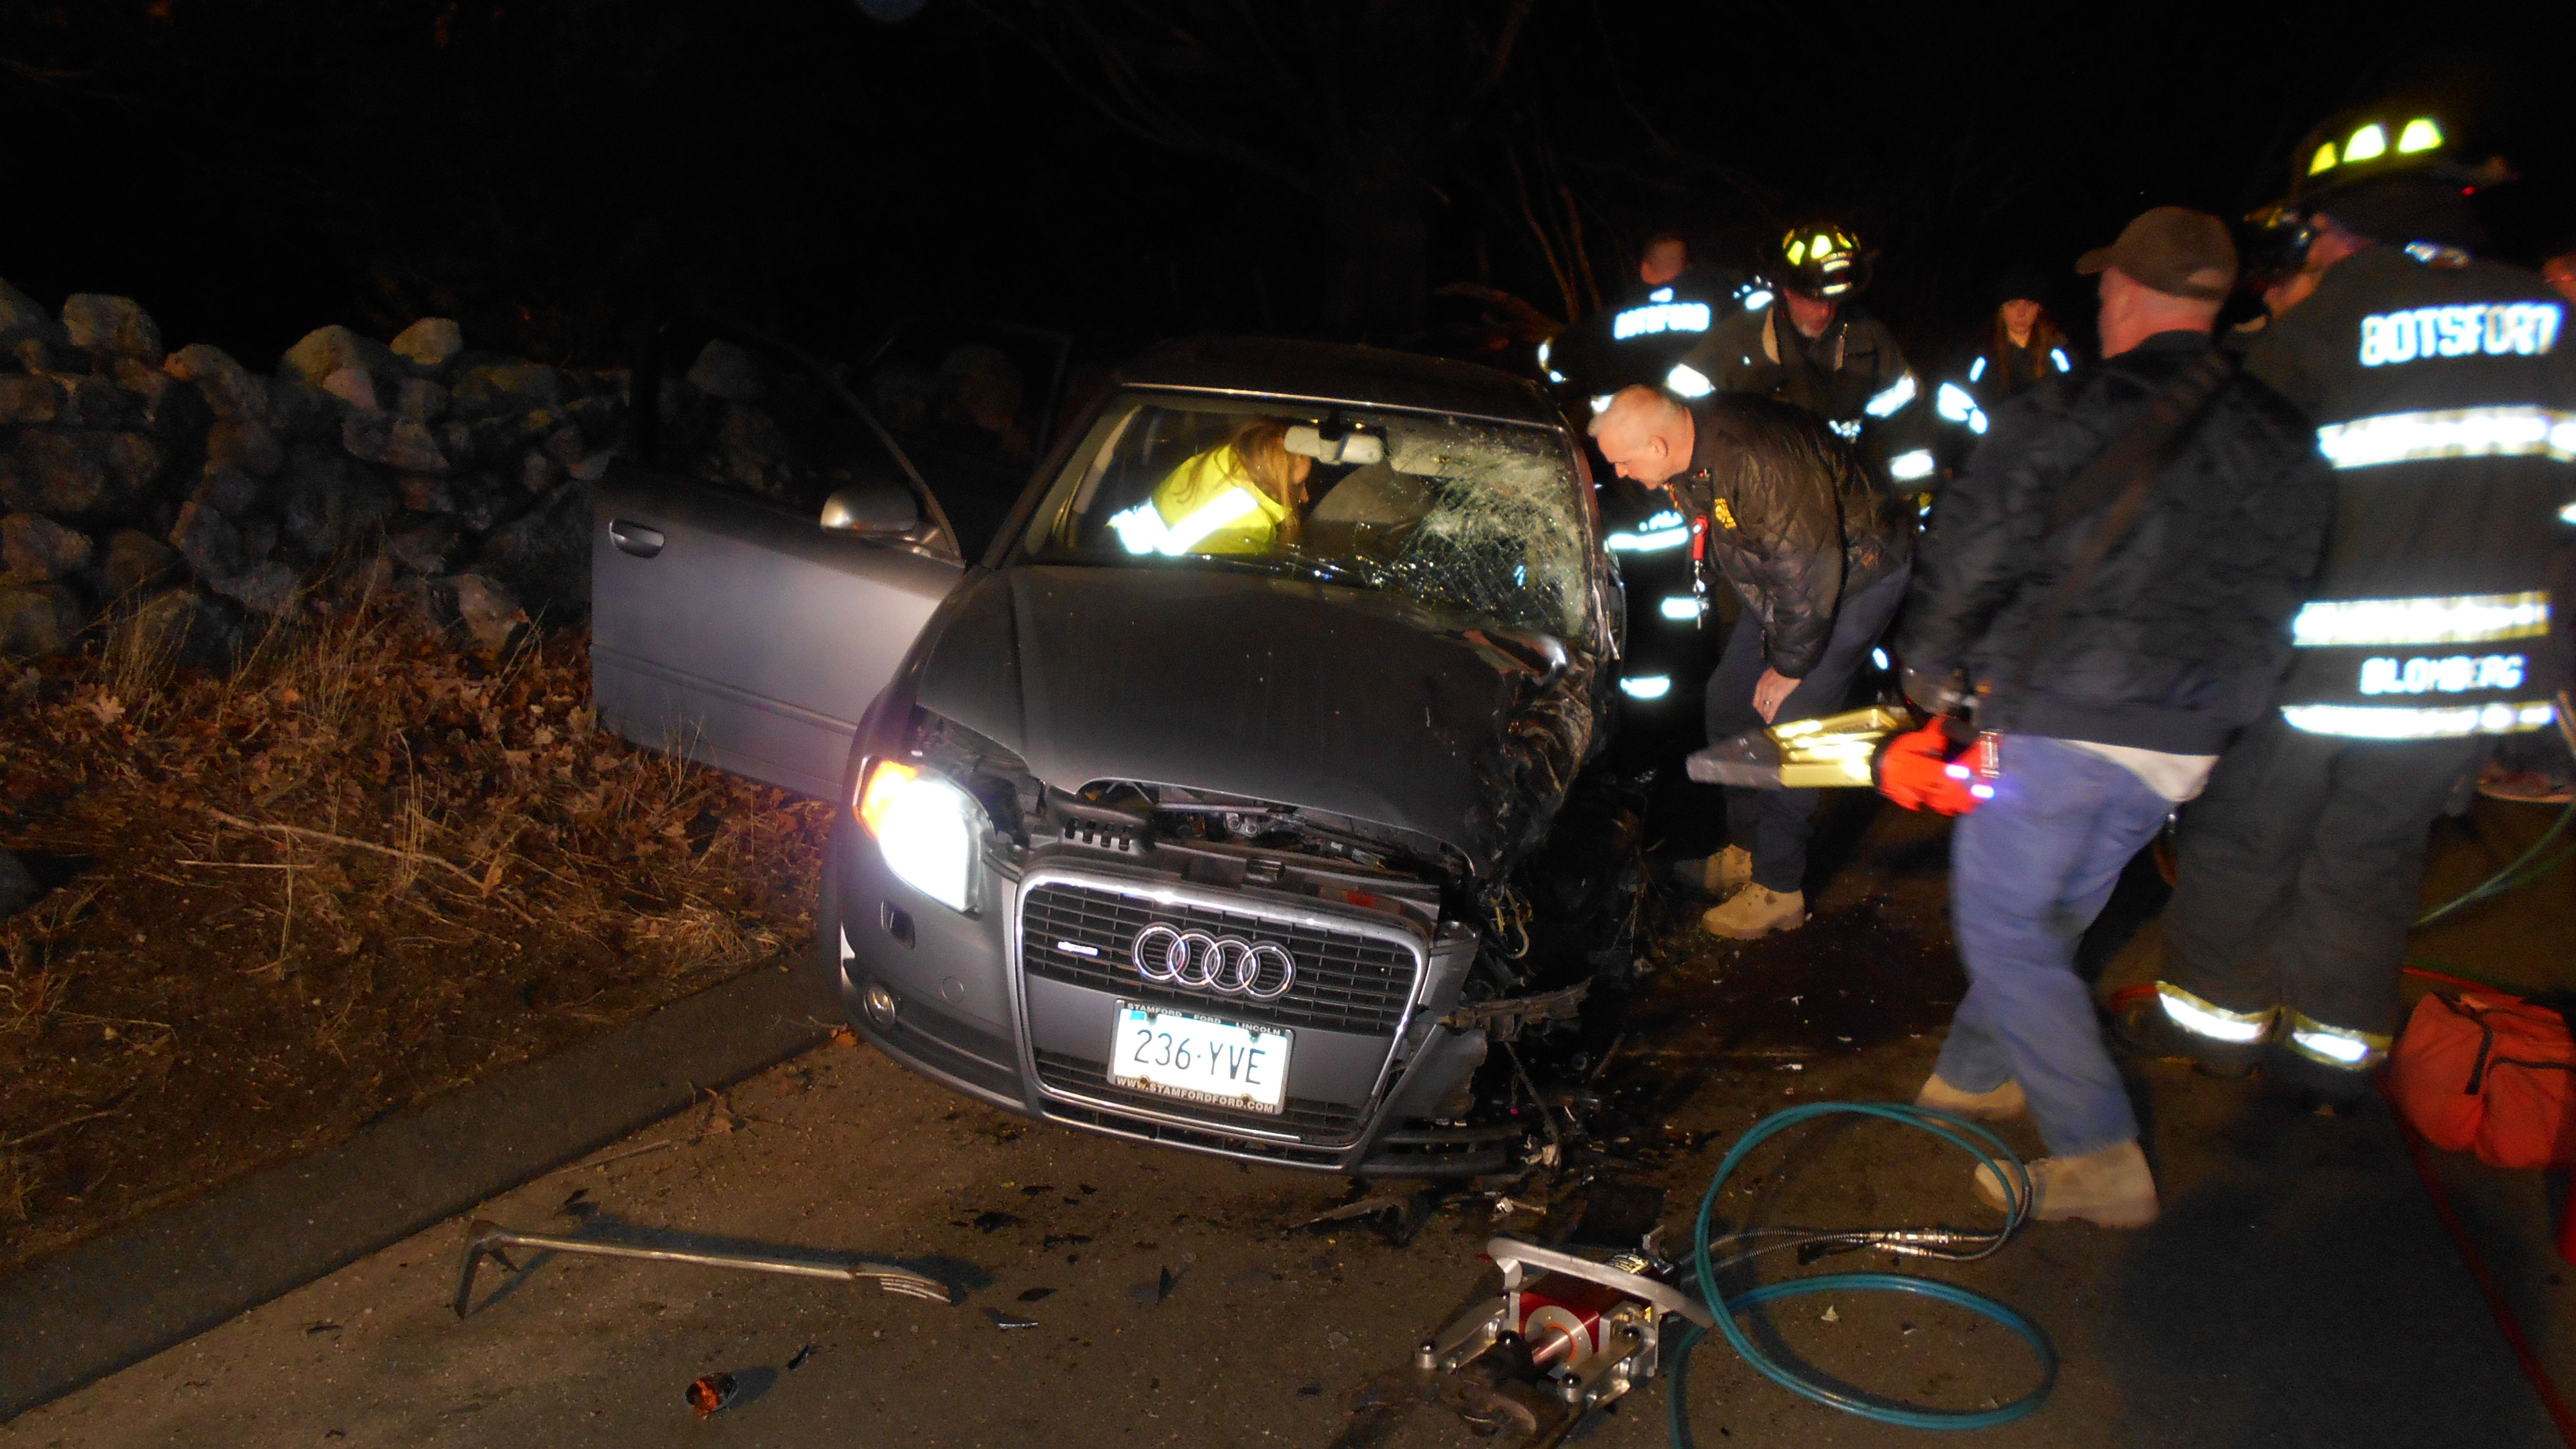 Serious Crash During Illegal Street Racing Sends Three To The